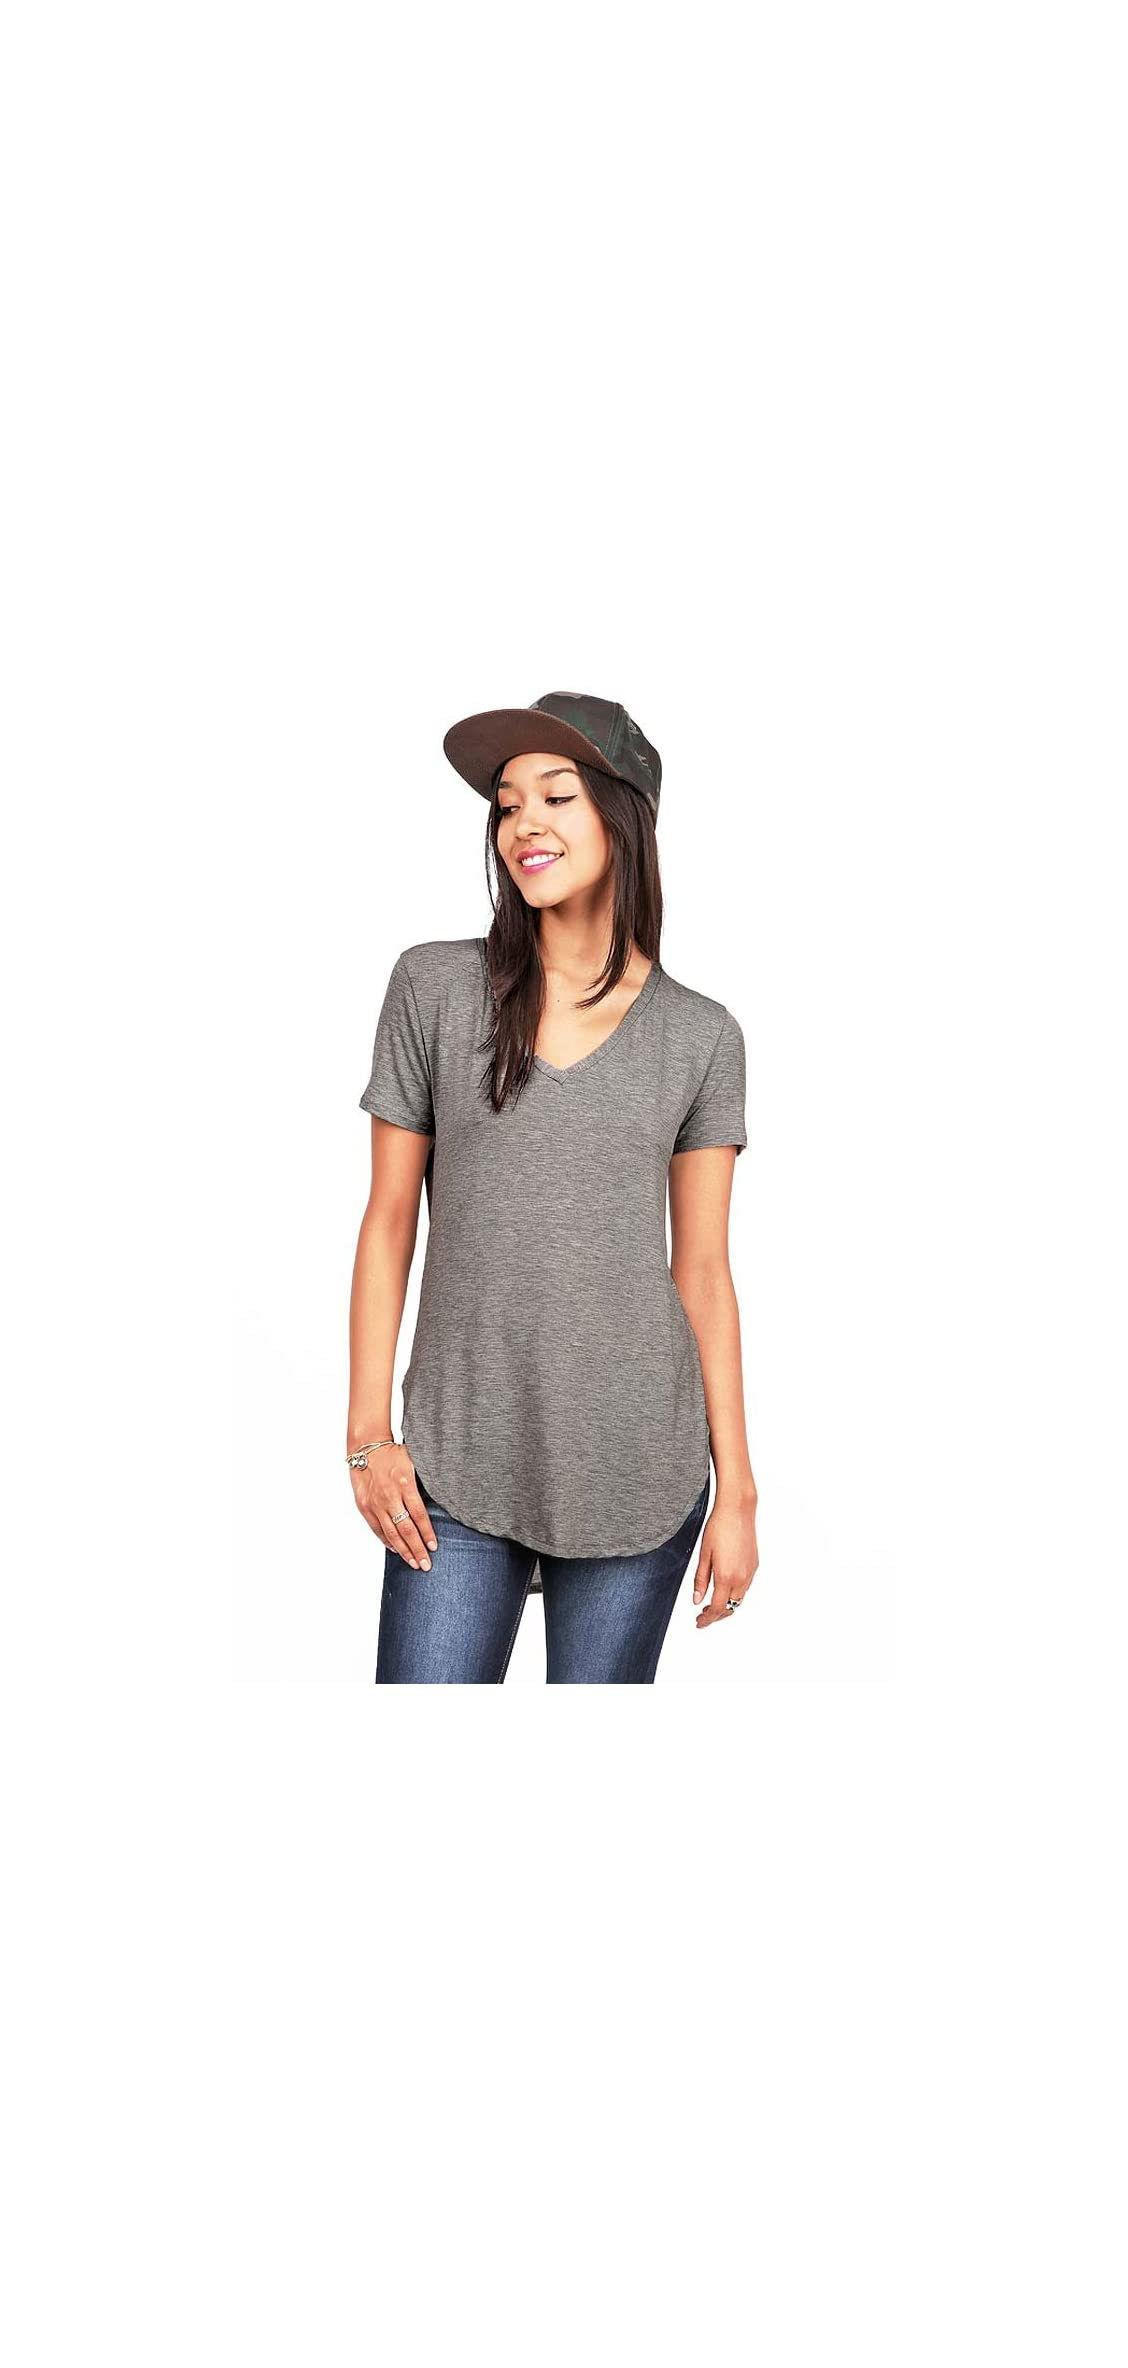 Women's Oversize Stretchy V-neck Tee